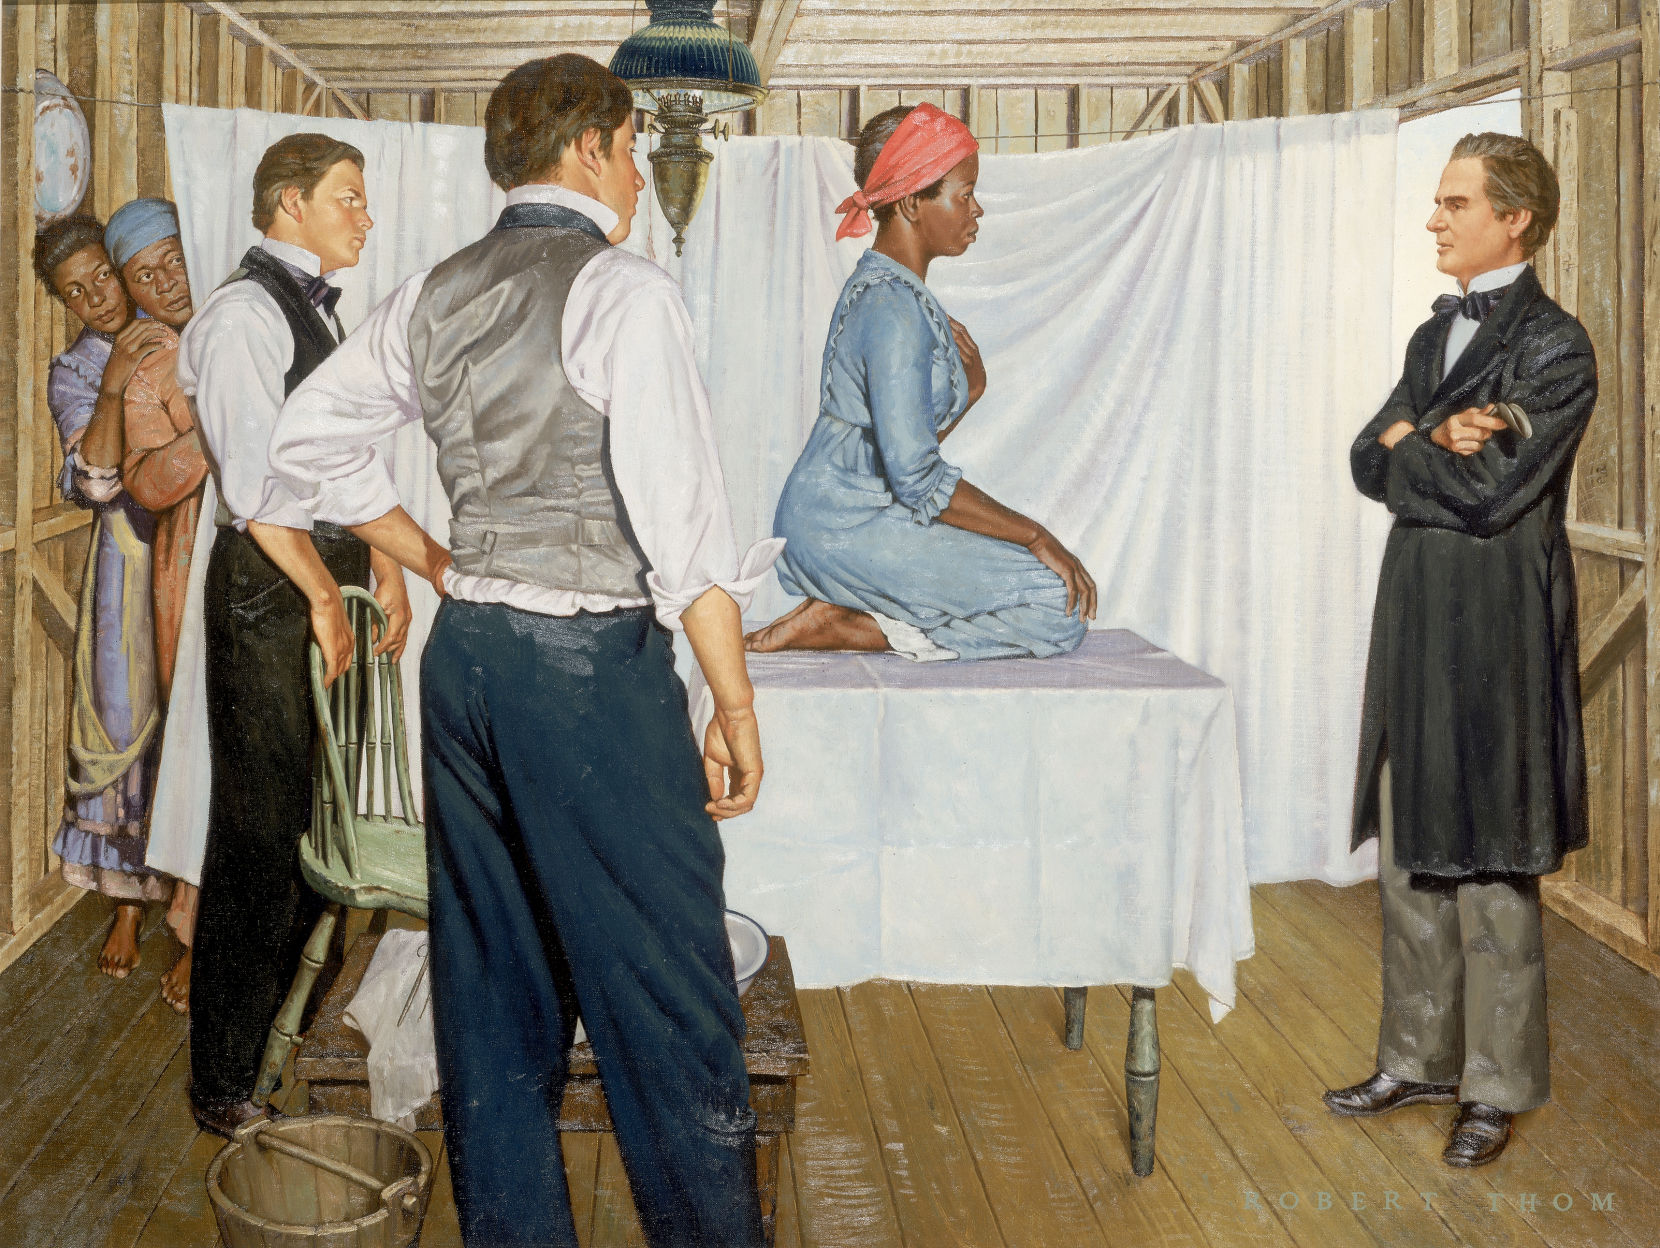 """""""J. Marion Sims: Gynecological Surgeon,"""" from """"The History of Medicine,"""" by Robert Thom, circa 1952. Archived at the University of Michigan. All 45 images available on  Imgur . Shown is the slave  Anarcha,"""